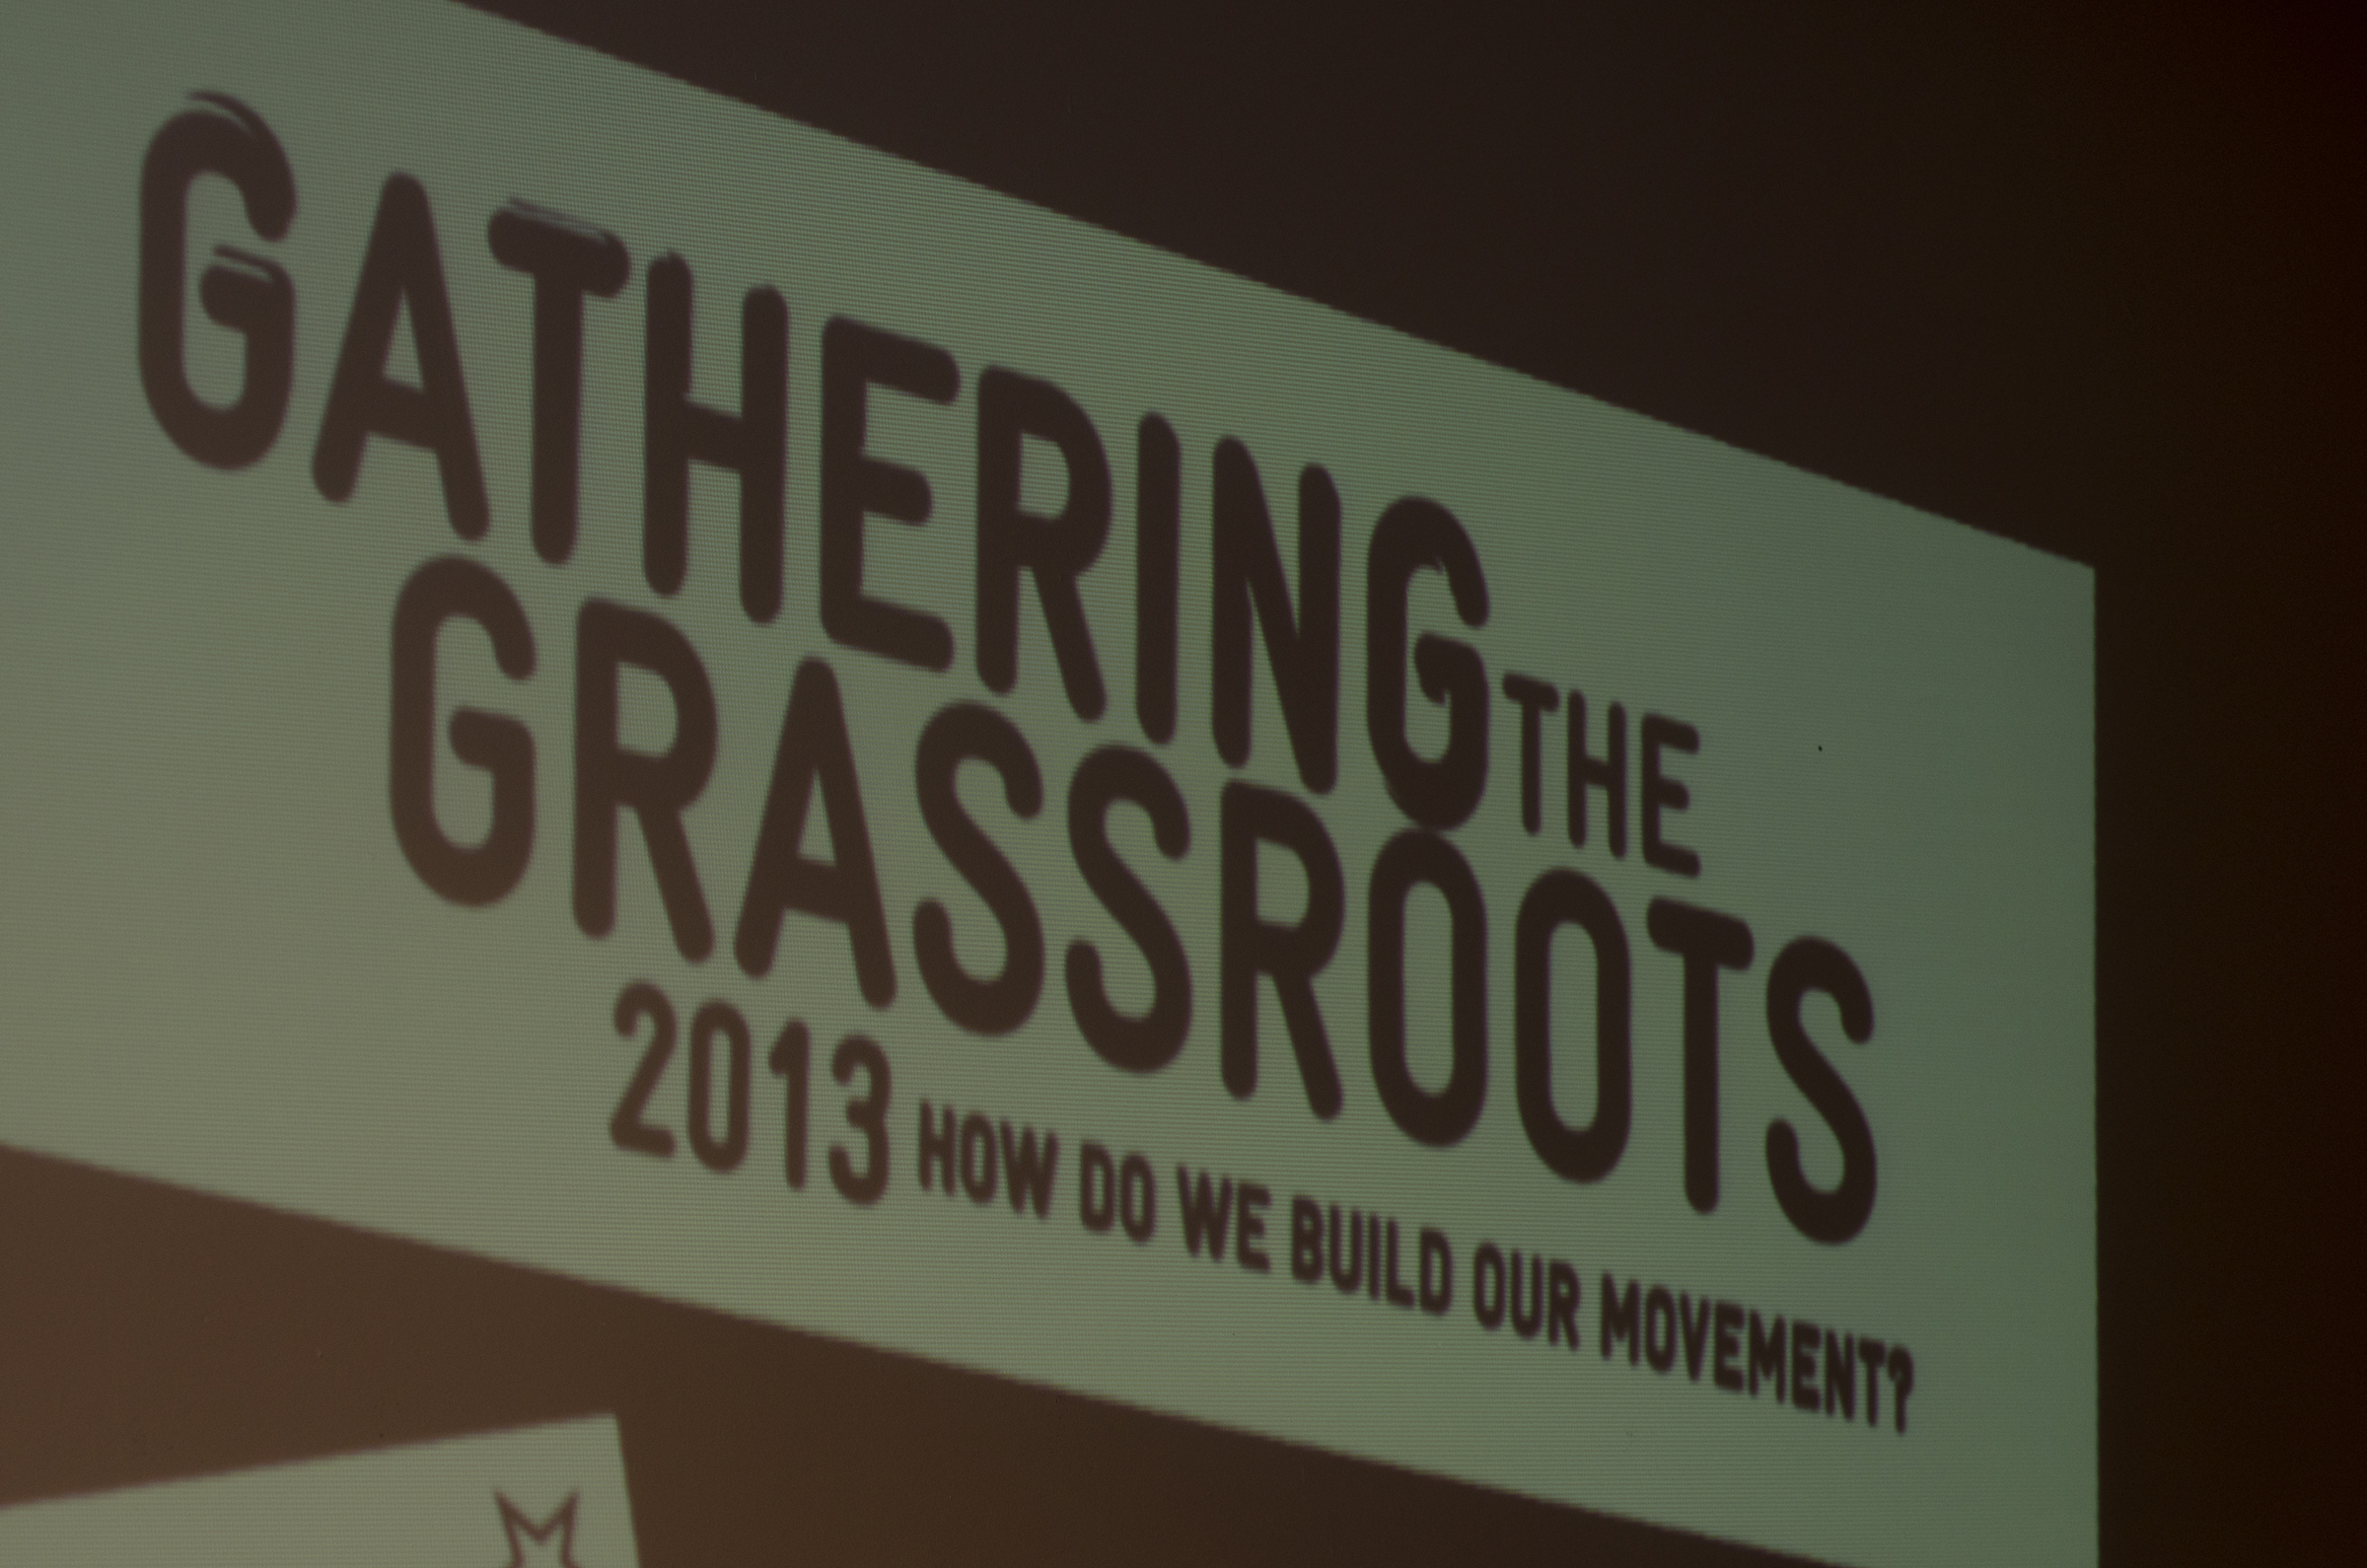 GATHERING THE GRASSROOTS